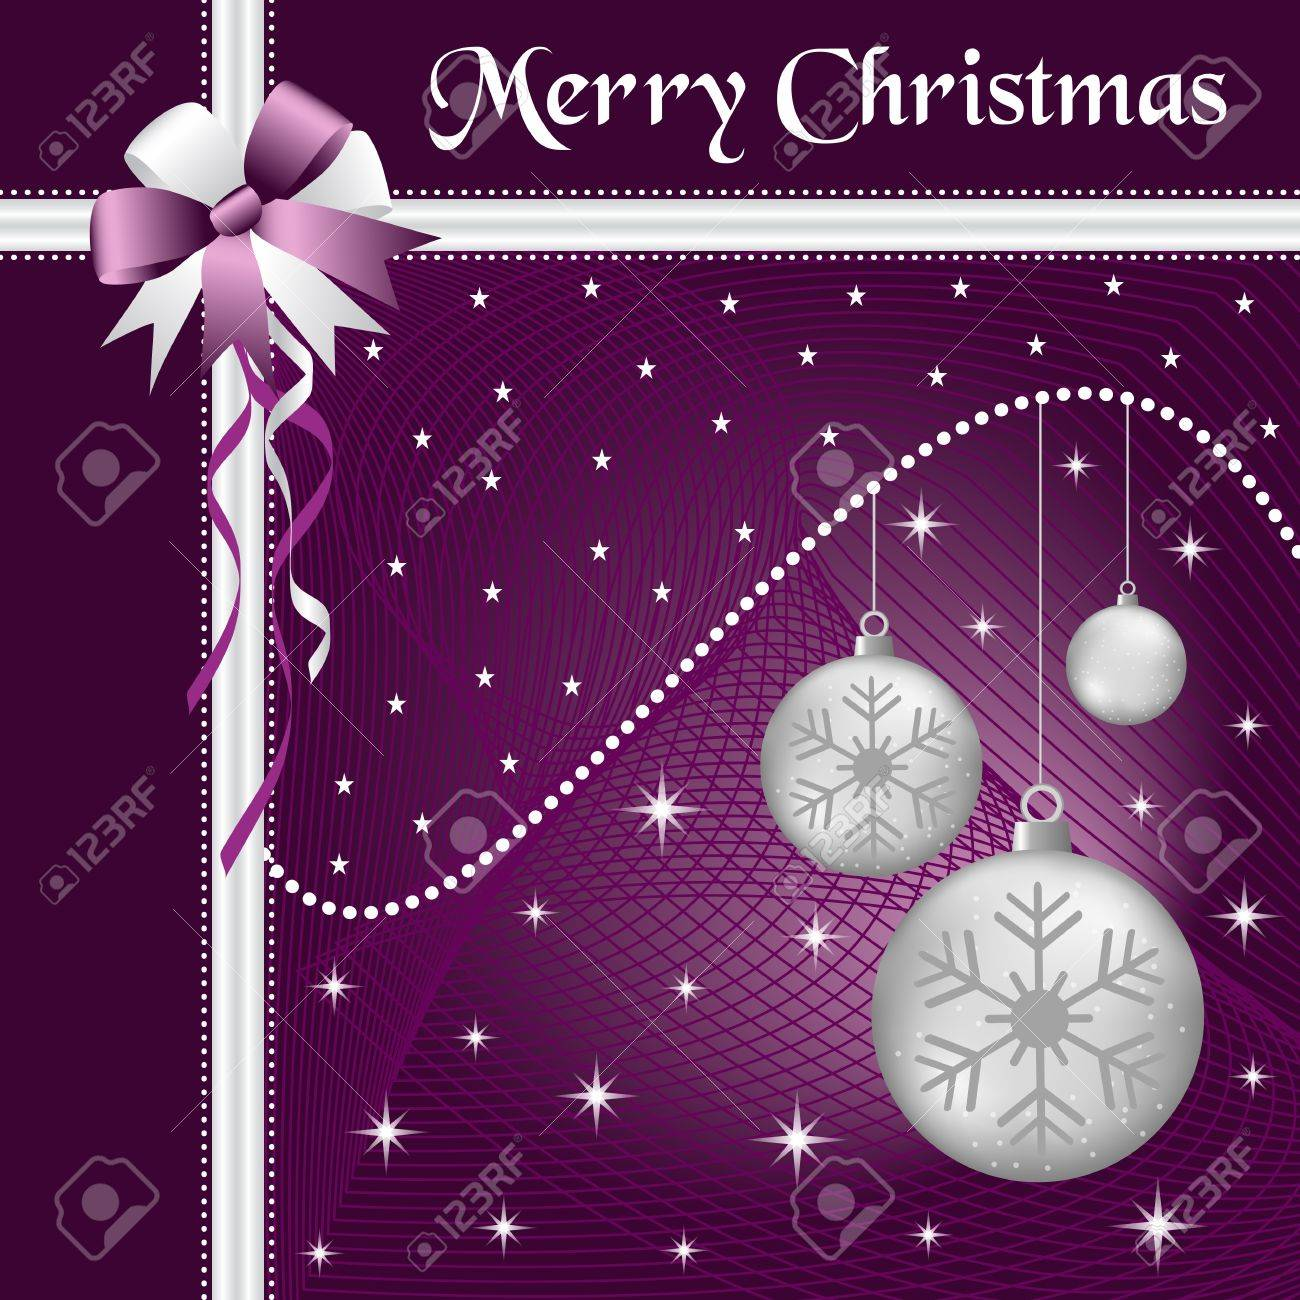 Silver christmas balls with purple and silver bow and ribbon, decorated with stars on a purple glowing background. Stock Vector - 15783796